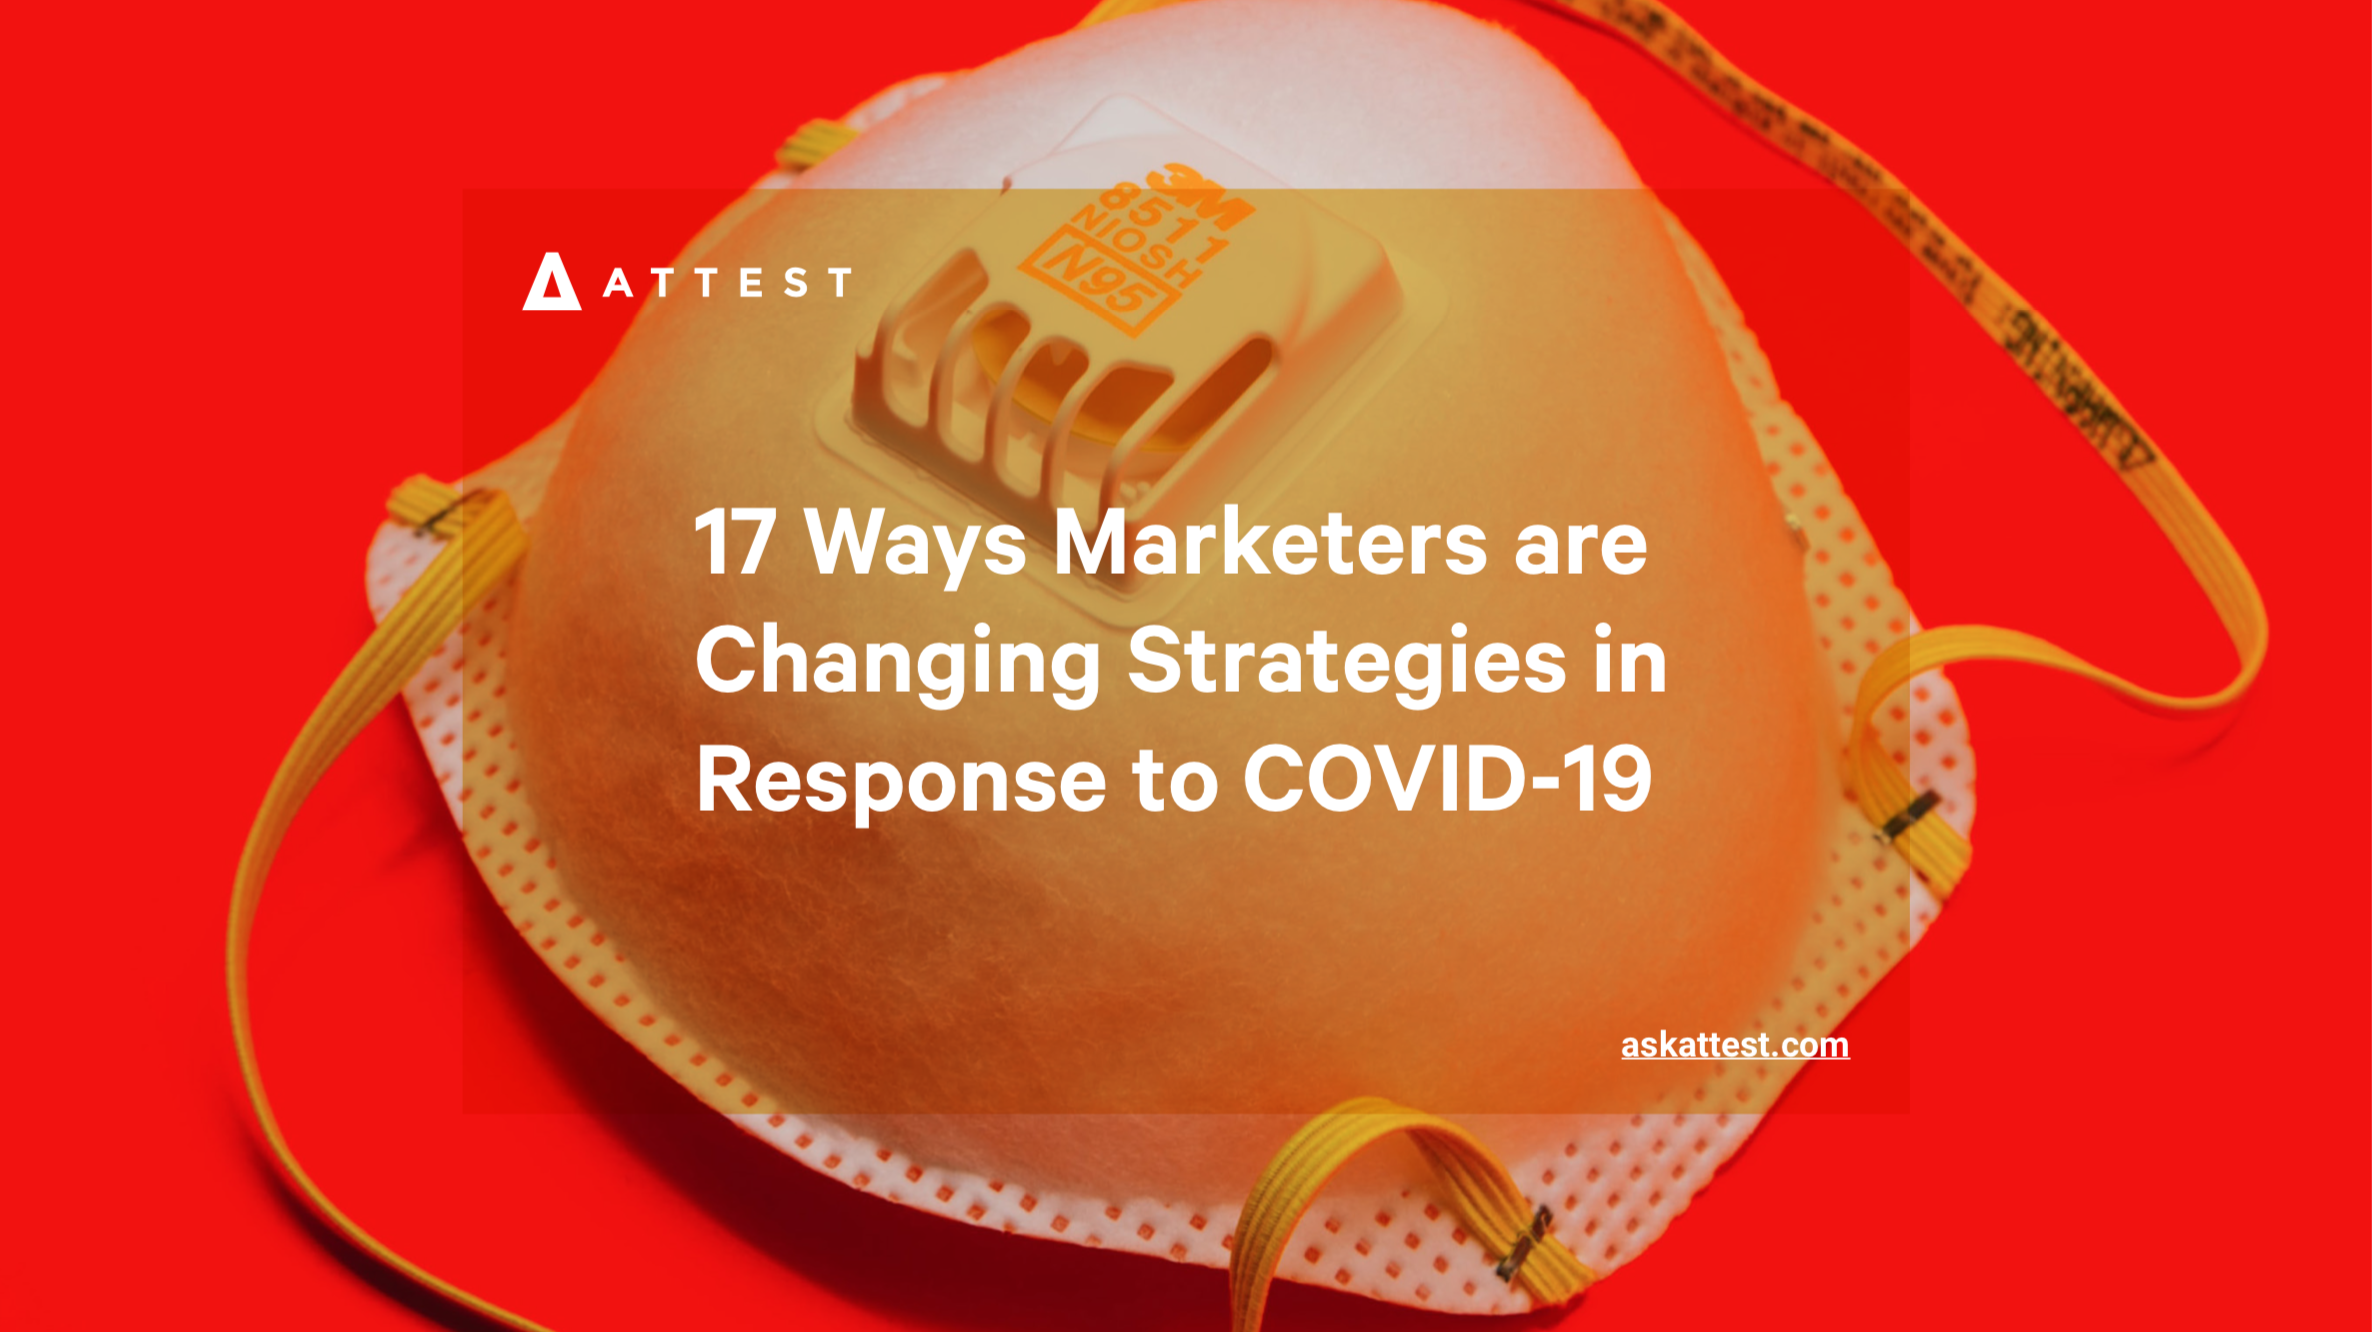 17 Ways Marketers are Changing Strategies in Response to COVID-19